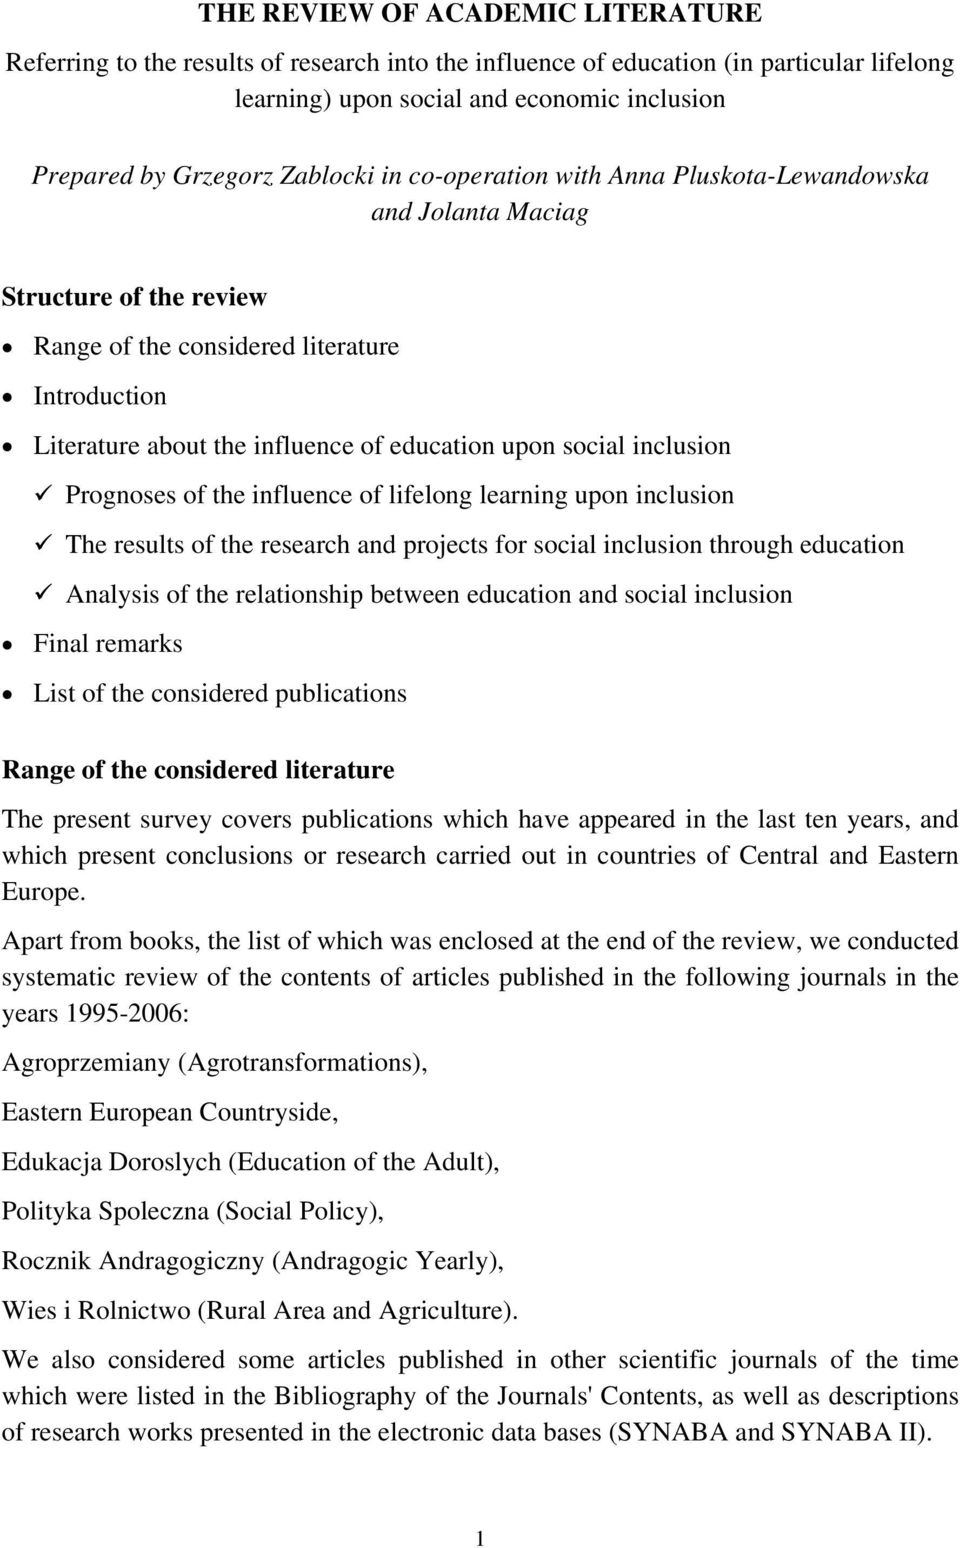 social inclusion Prognoses of the influence of lifelong learning upon inclusion The results of the research and projects for social inclusion through education Analysis of the relationship between